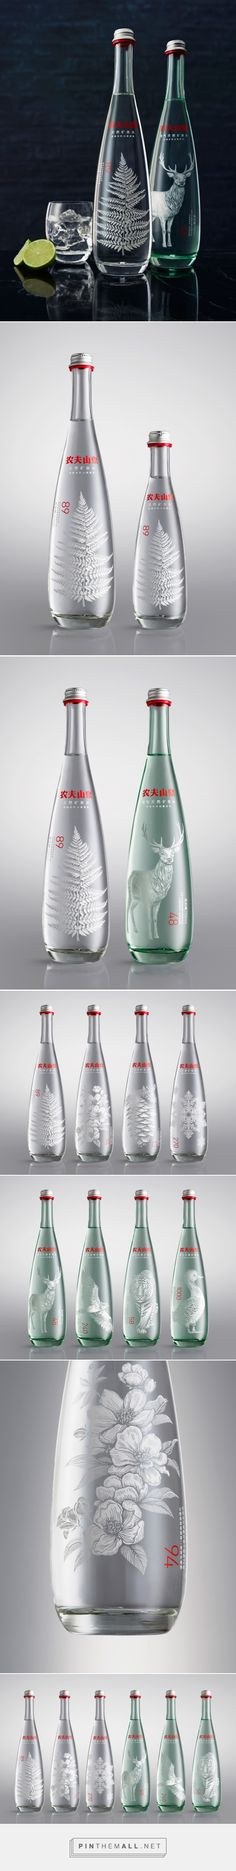 Nongfu Spring Mineral Water by Horse studio. Source: World Packaging Design Society . Pin curated by #SFields99 #packaging #design